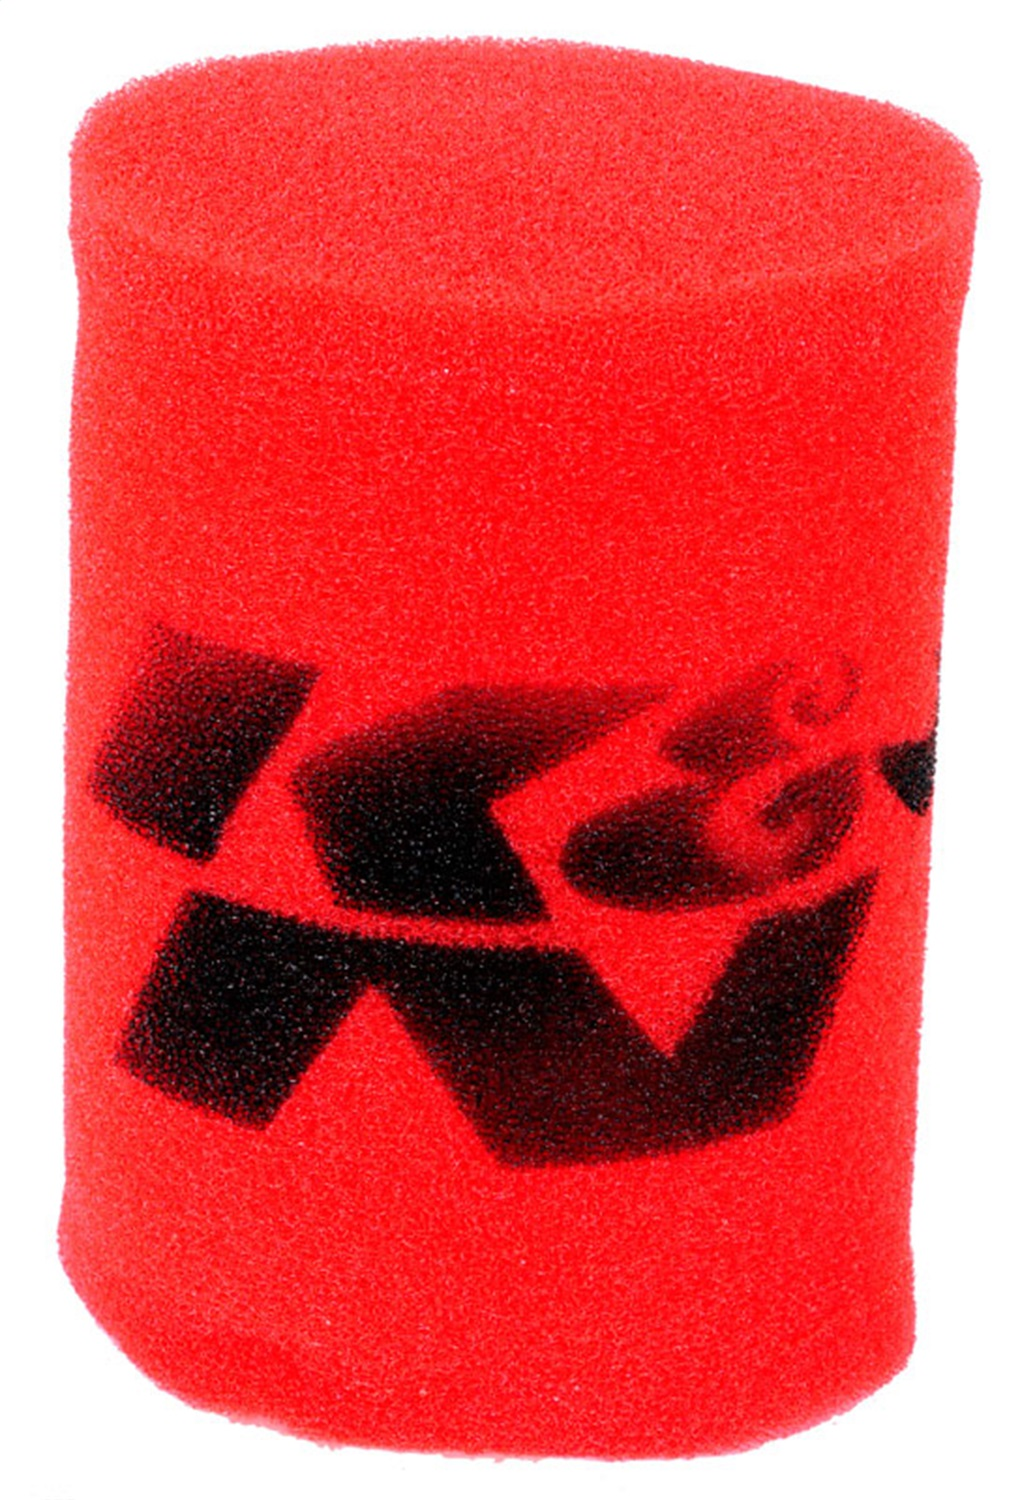 K&N Filters 25-1770 Airforce Pre-Cleaner; Foam Filter Wrap 25-1770